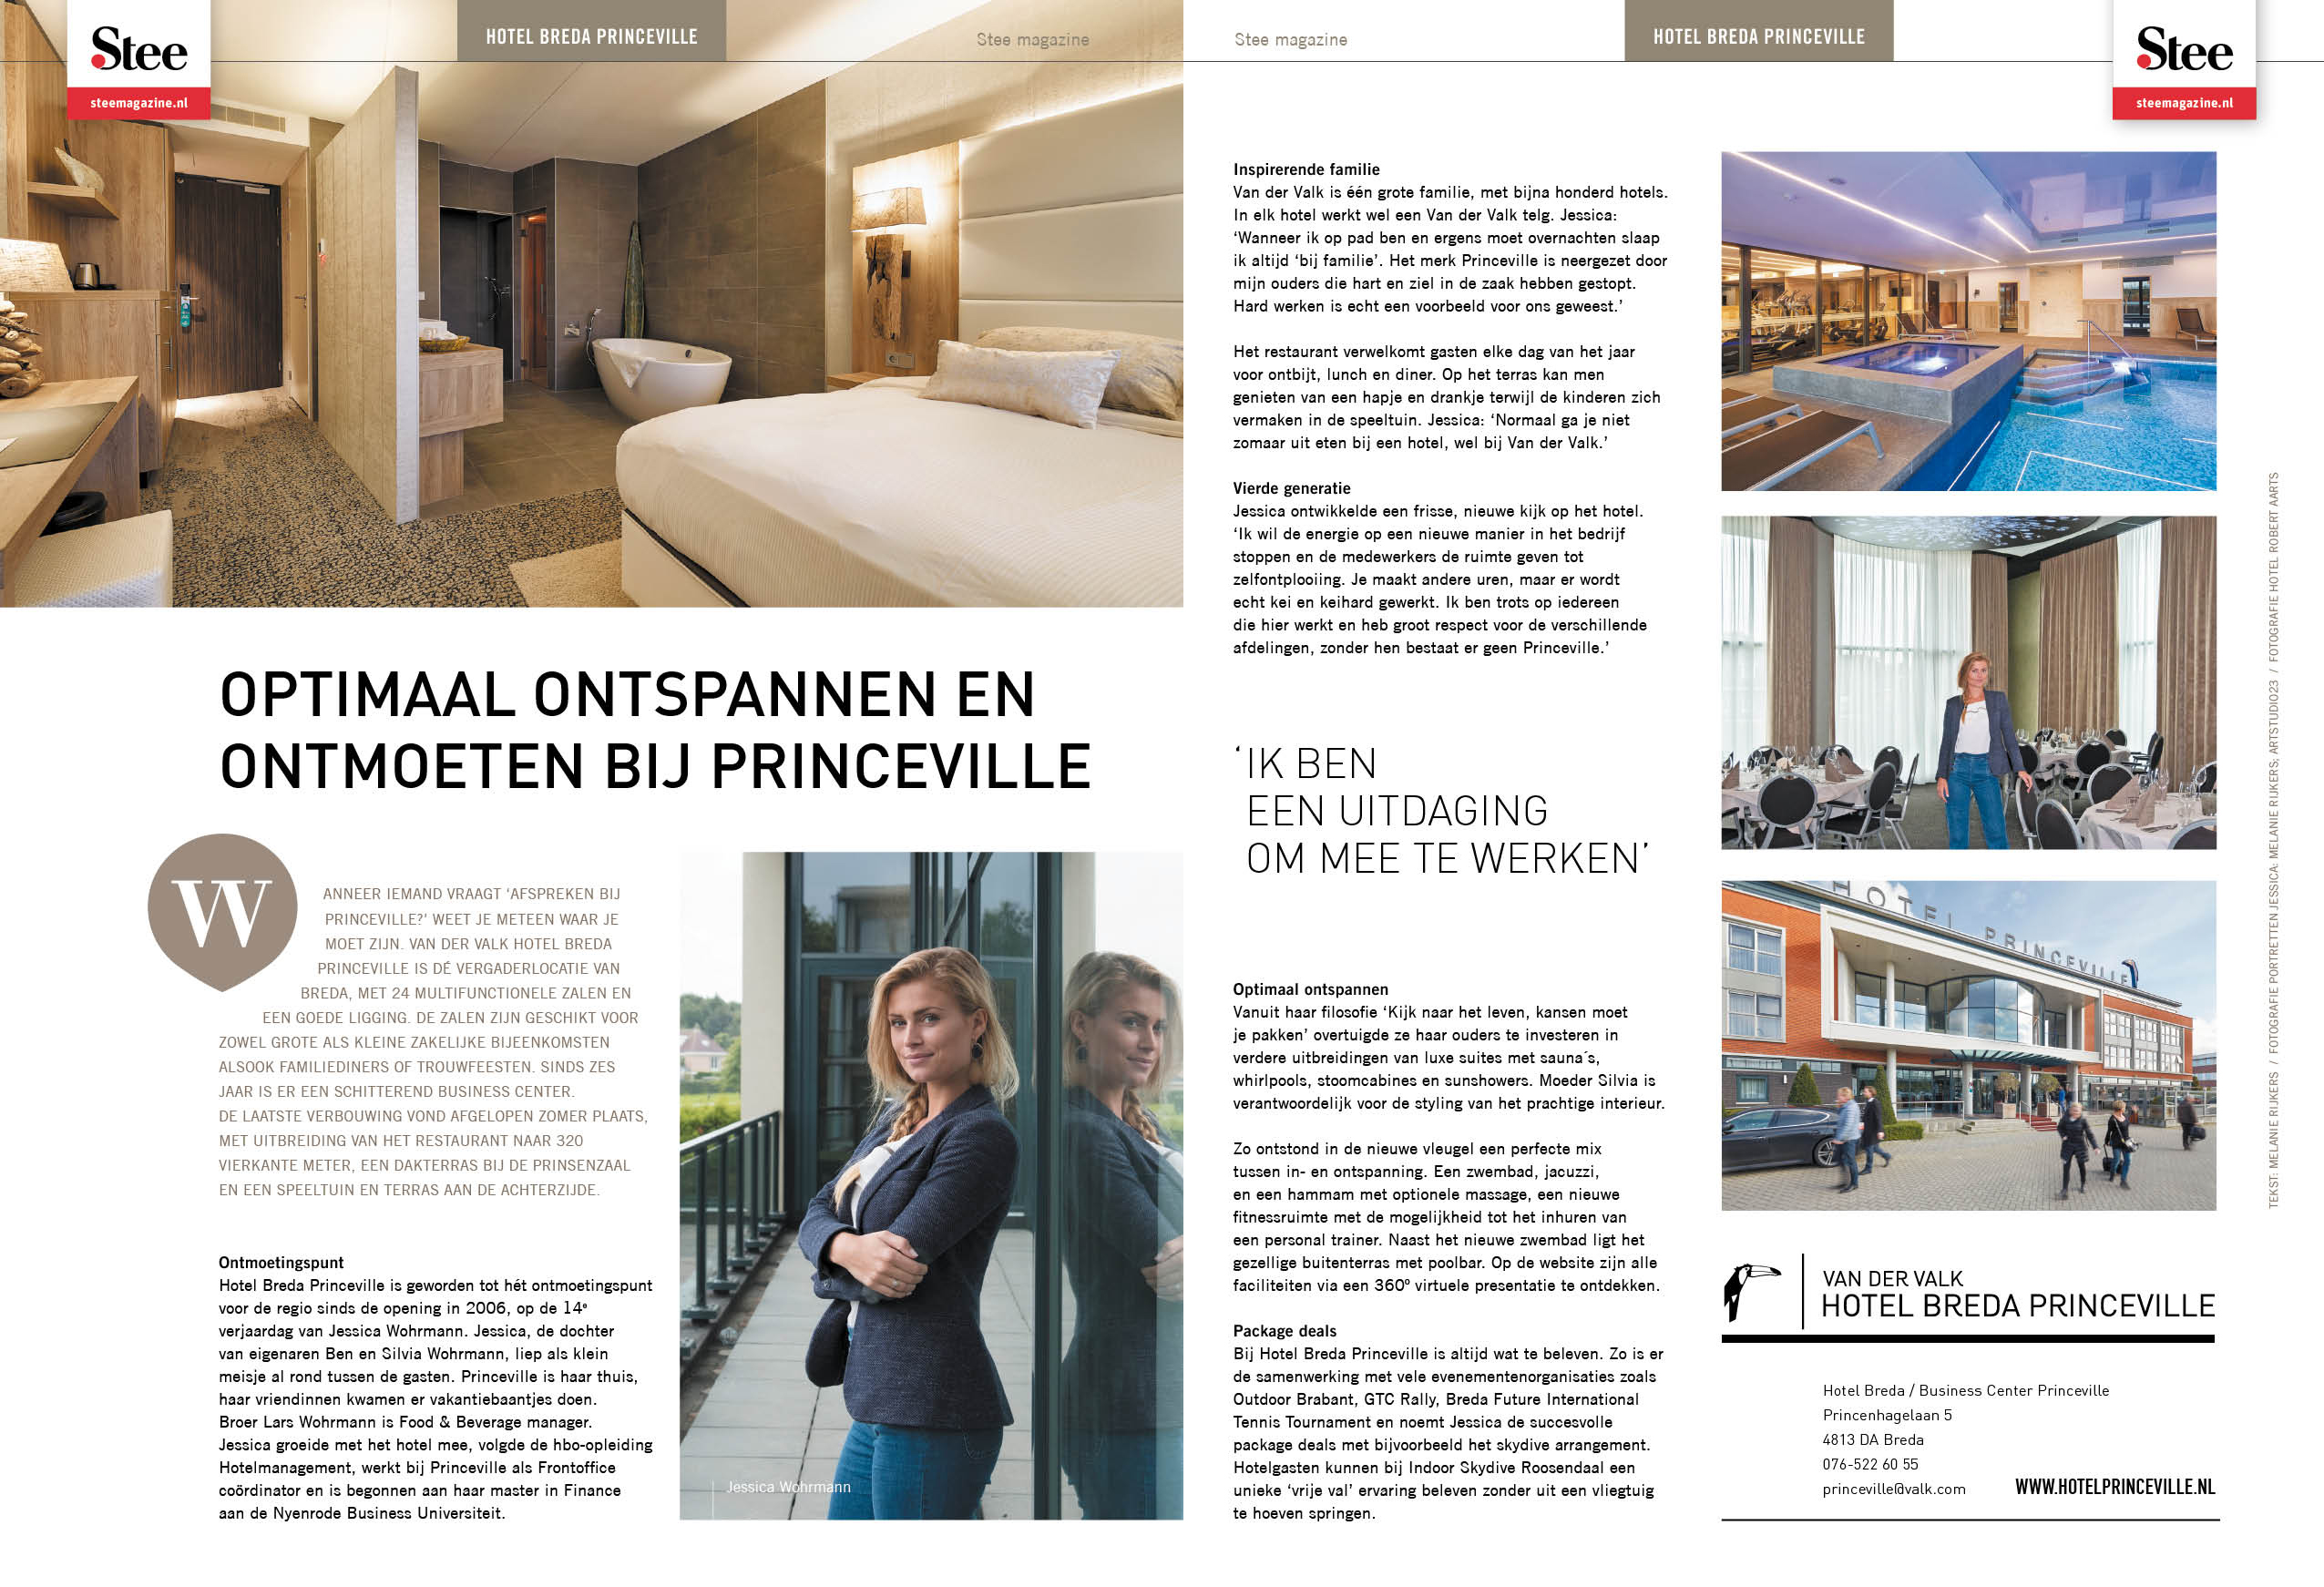 Article on Princeville for Stee Magazine